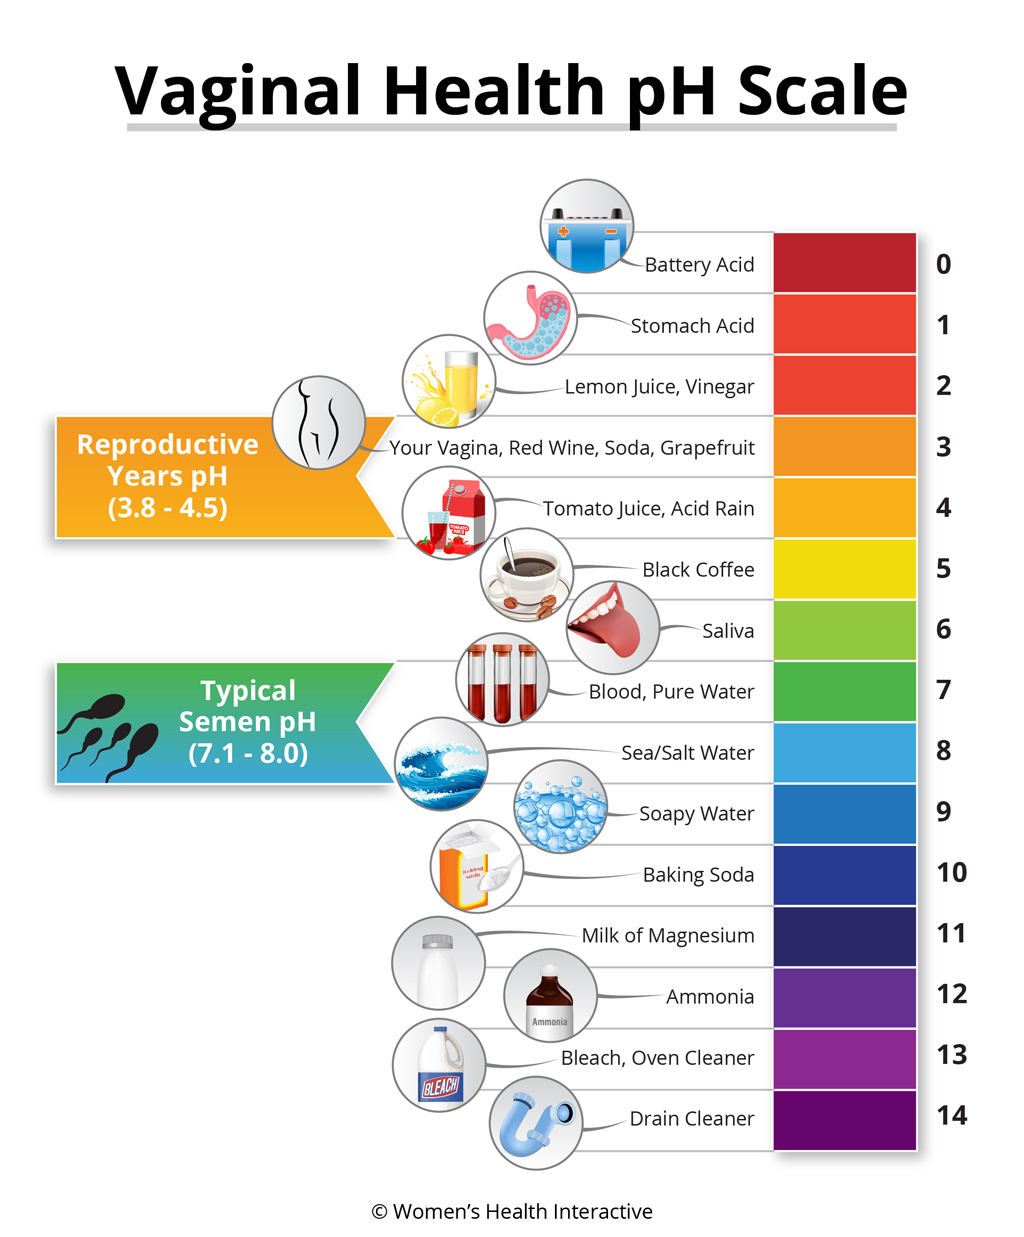 Color-Coded pH Infographic Chart Showing Vaginal pH Levels Compared To Everyday Items